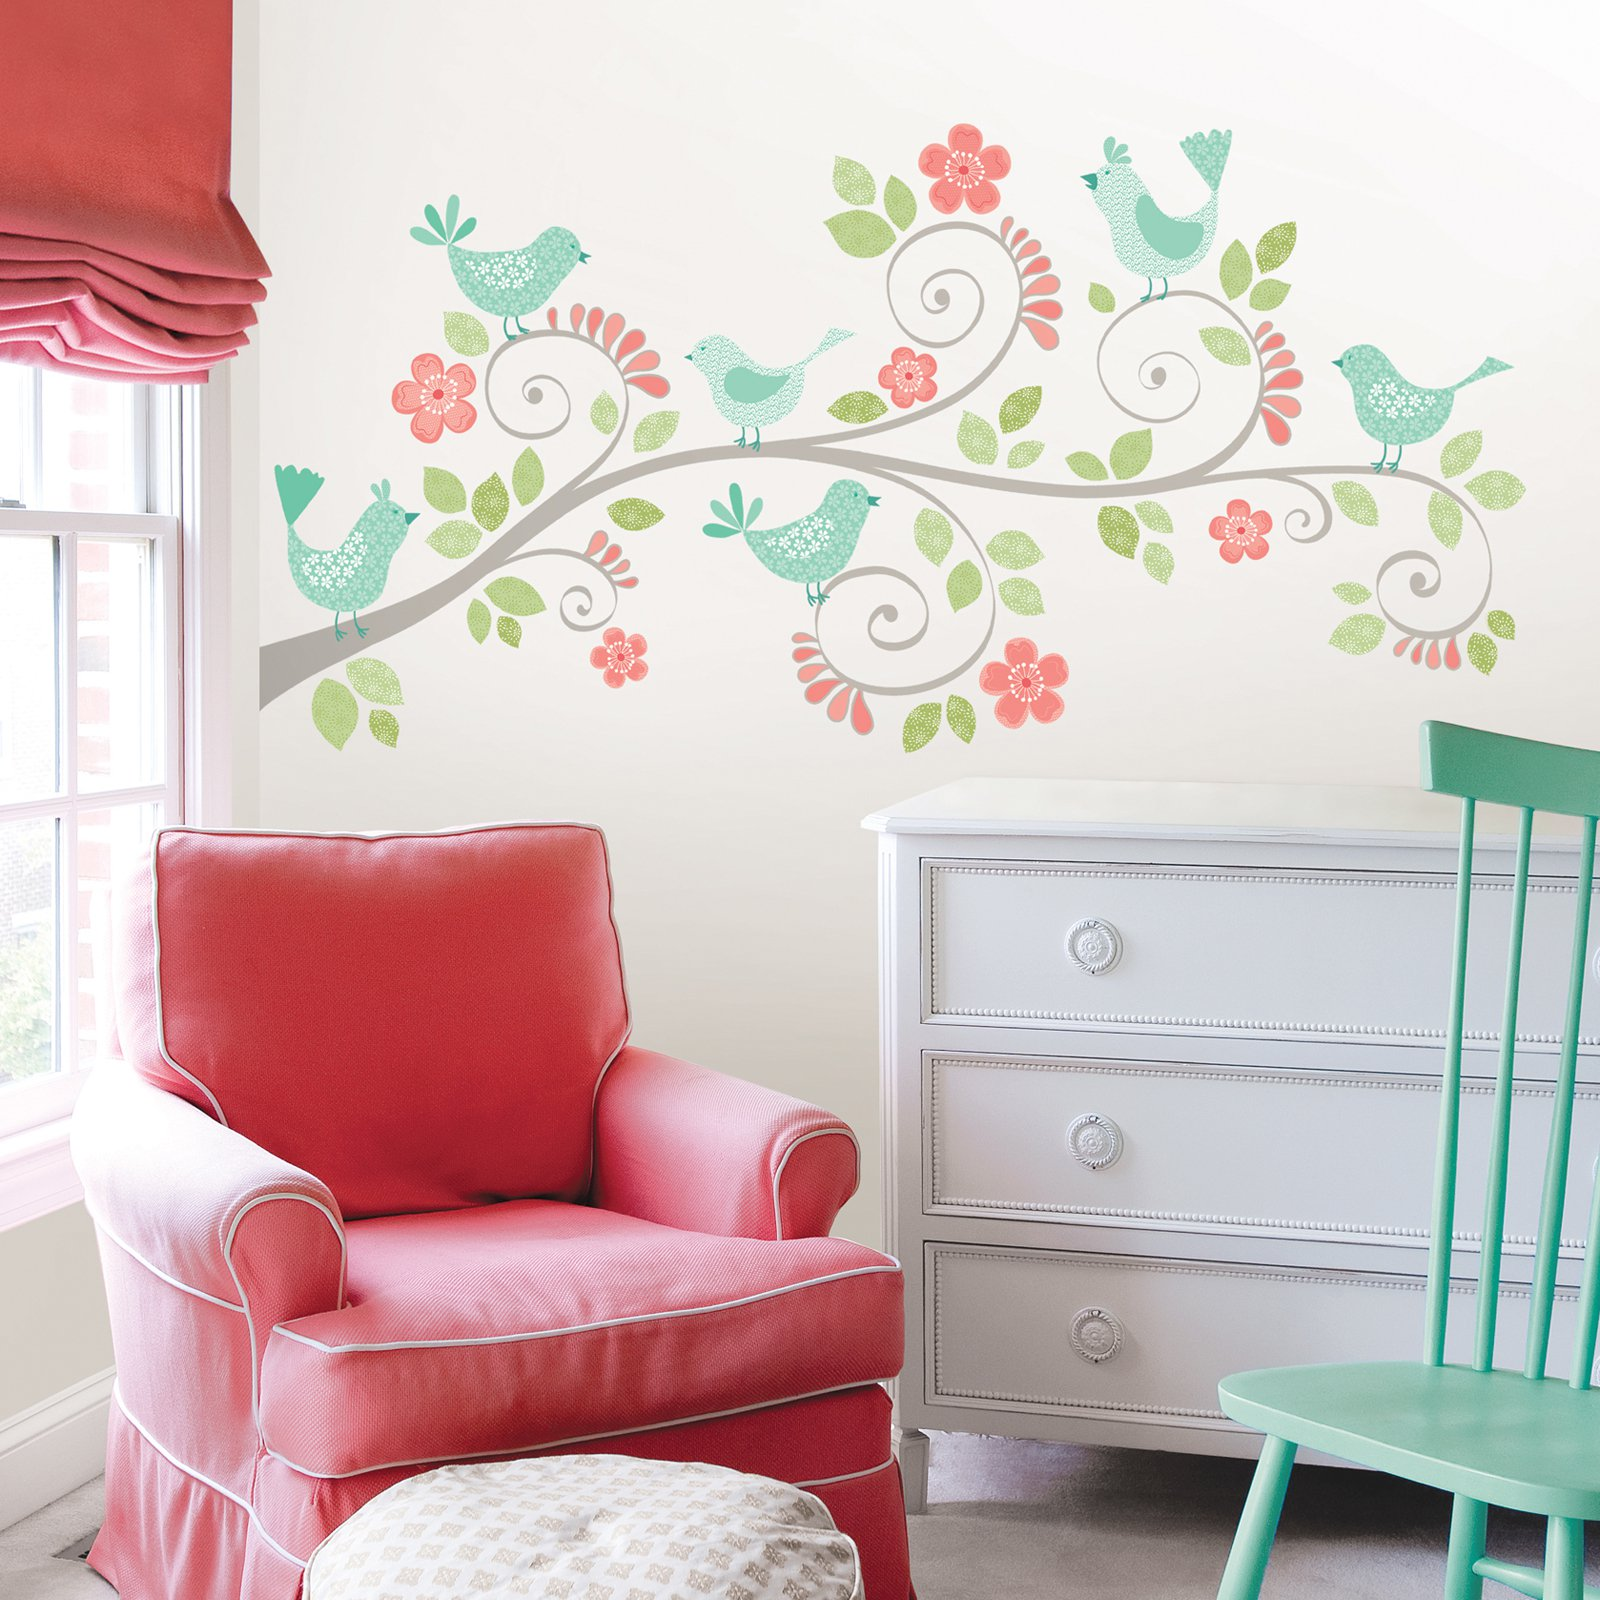 WallPops Pretty Tweet Wall Art Kit